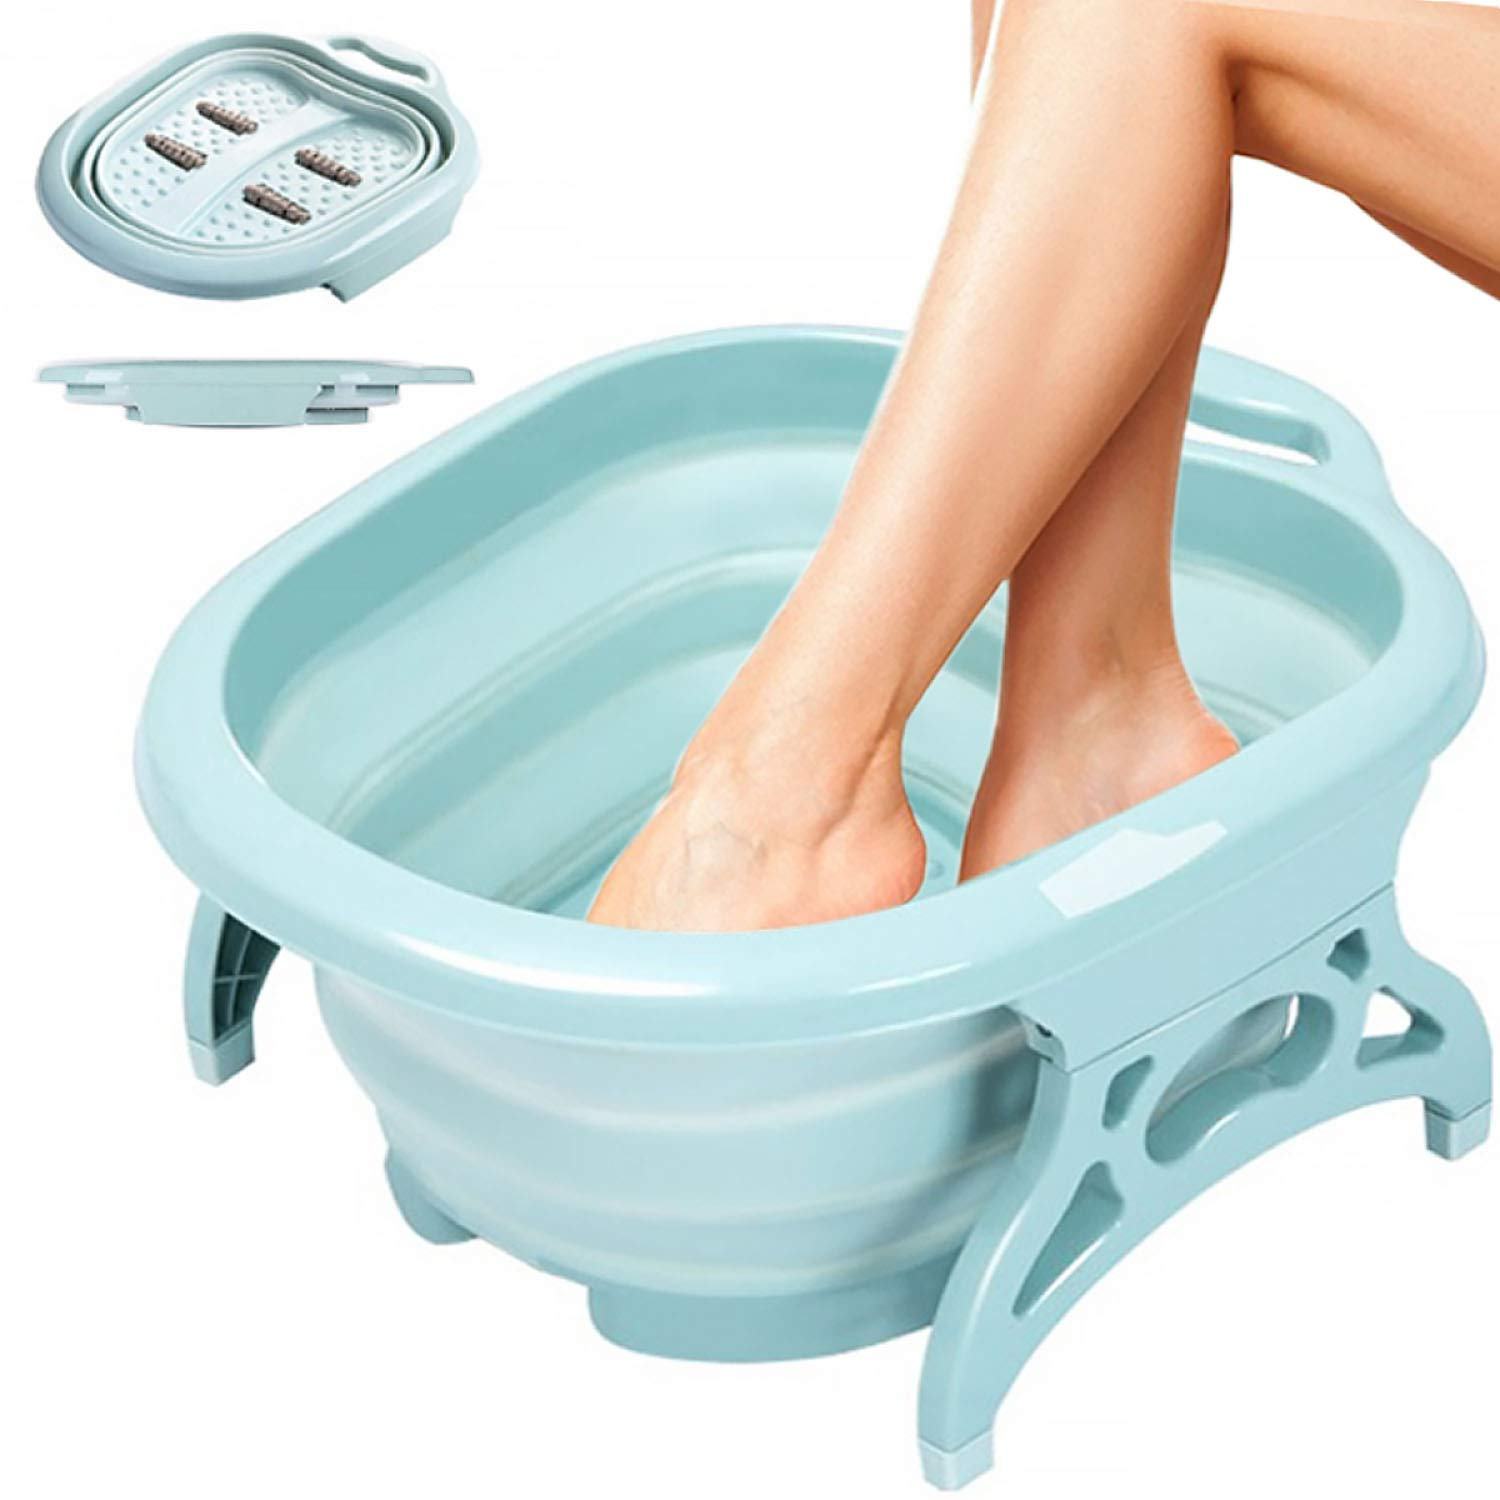 Foot Bath - Collapsible Foot Spa with Foot Massager rollers - Foot Soak Tub for Athletes Foot Treatment, Pedicure Tub Kit. Used with Epsom Salts for Soaking, Tea Tree Oil Foot Soak. Large Wash Basin